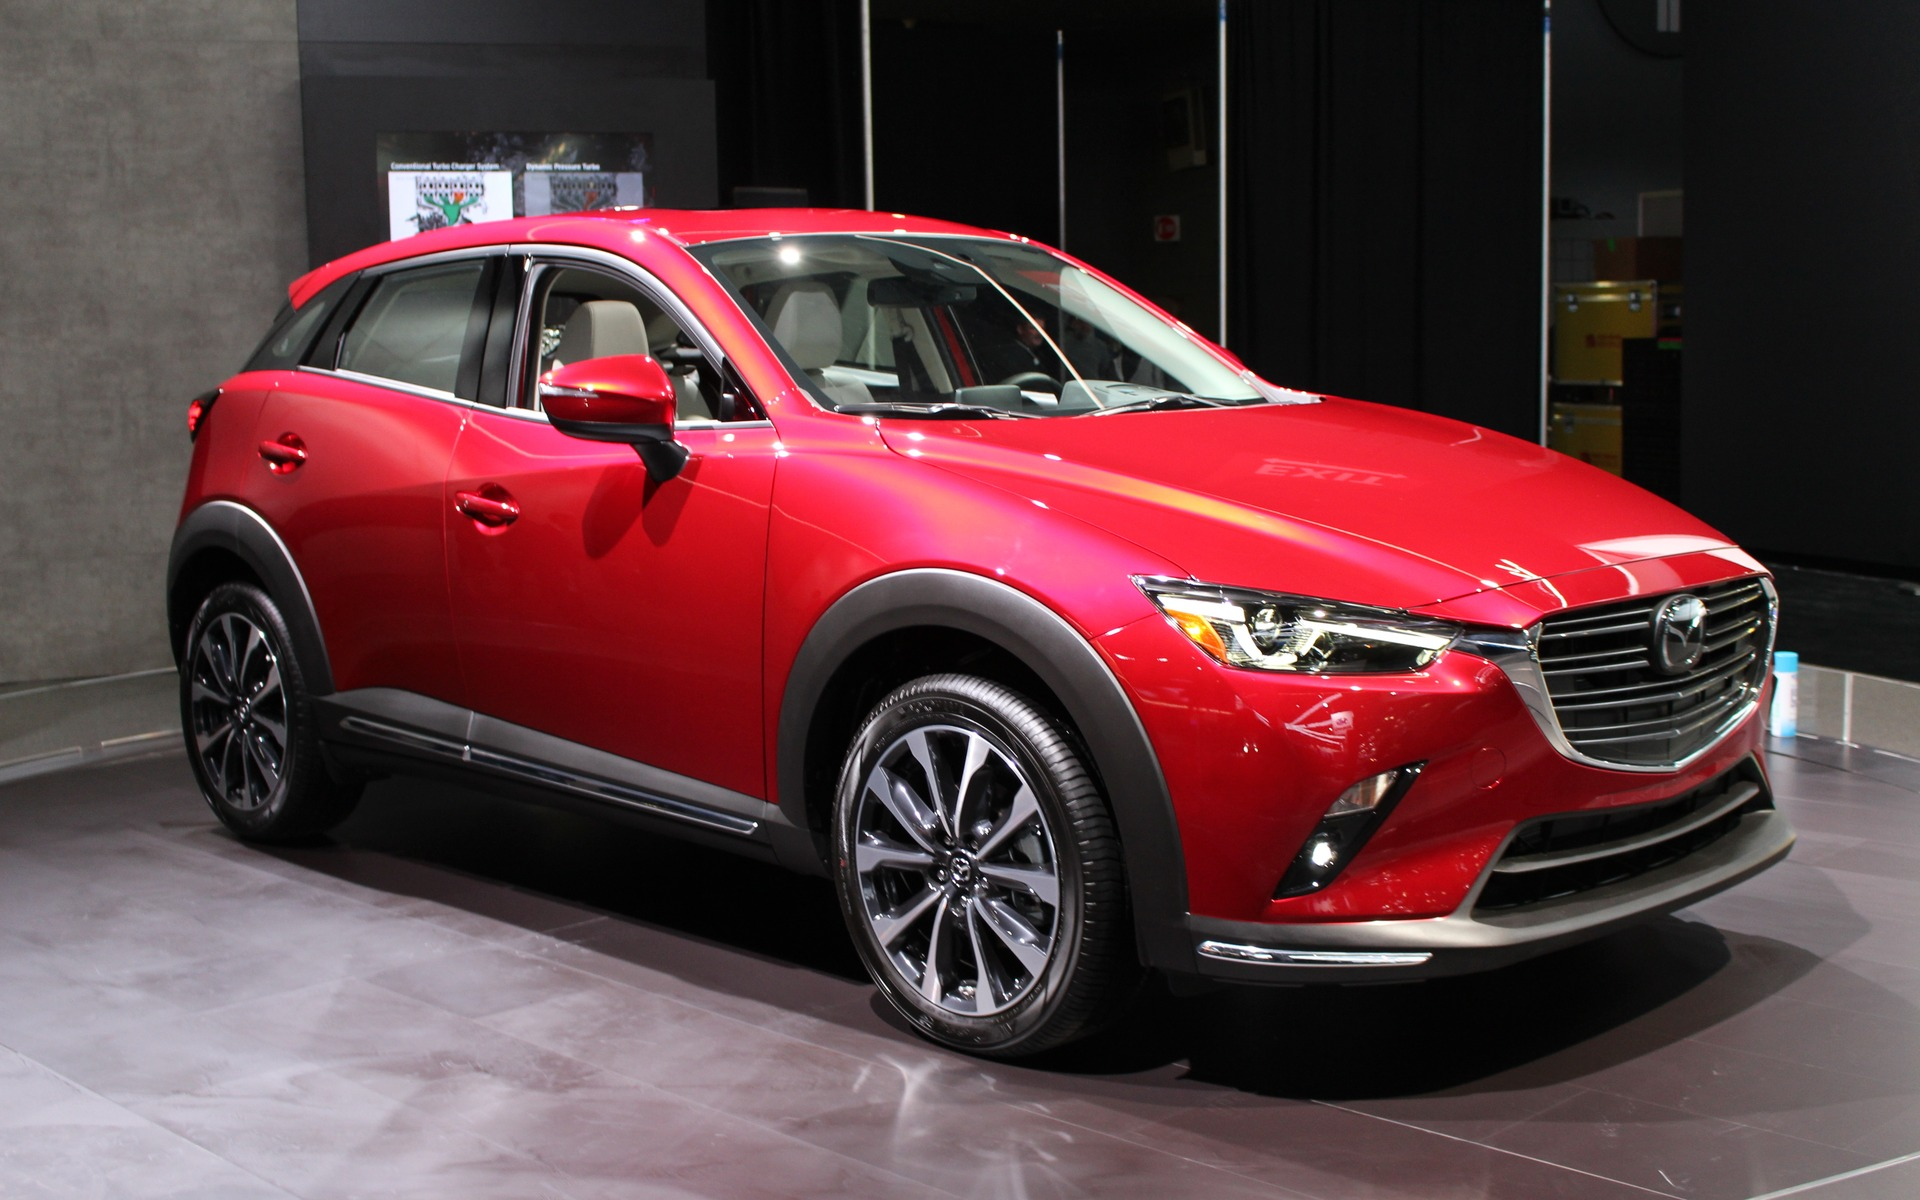 3e96baedbc78 2019 Mazda CX-3 on Display in New York - The Car Guide